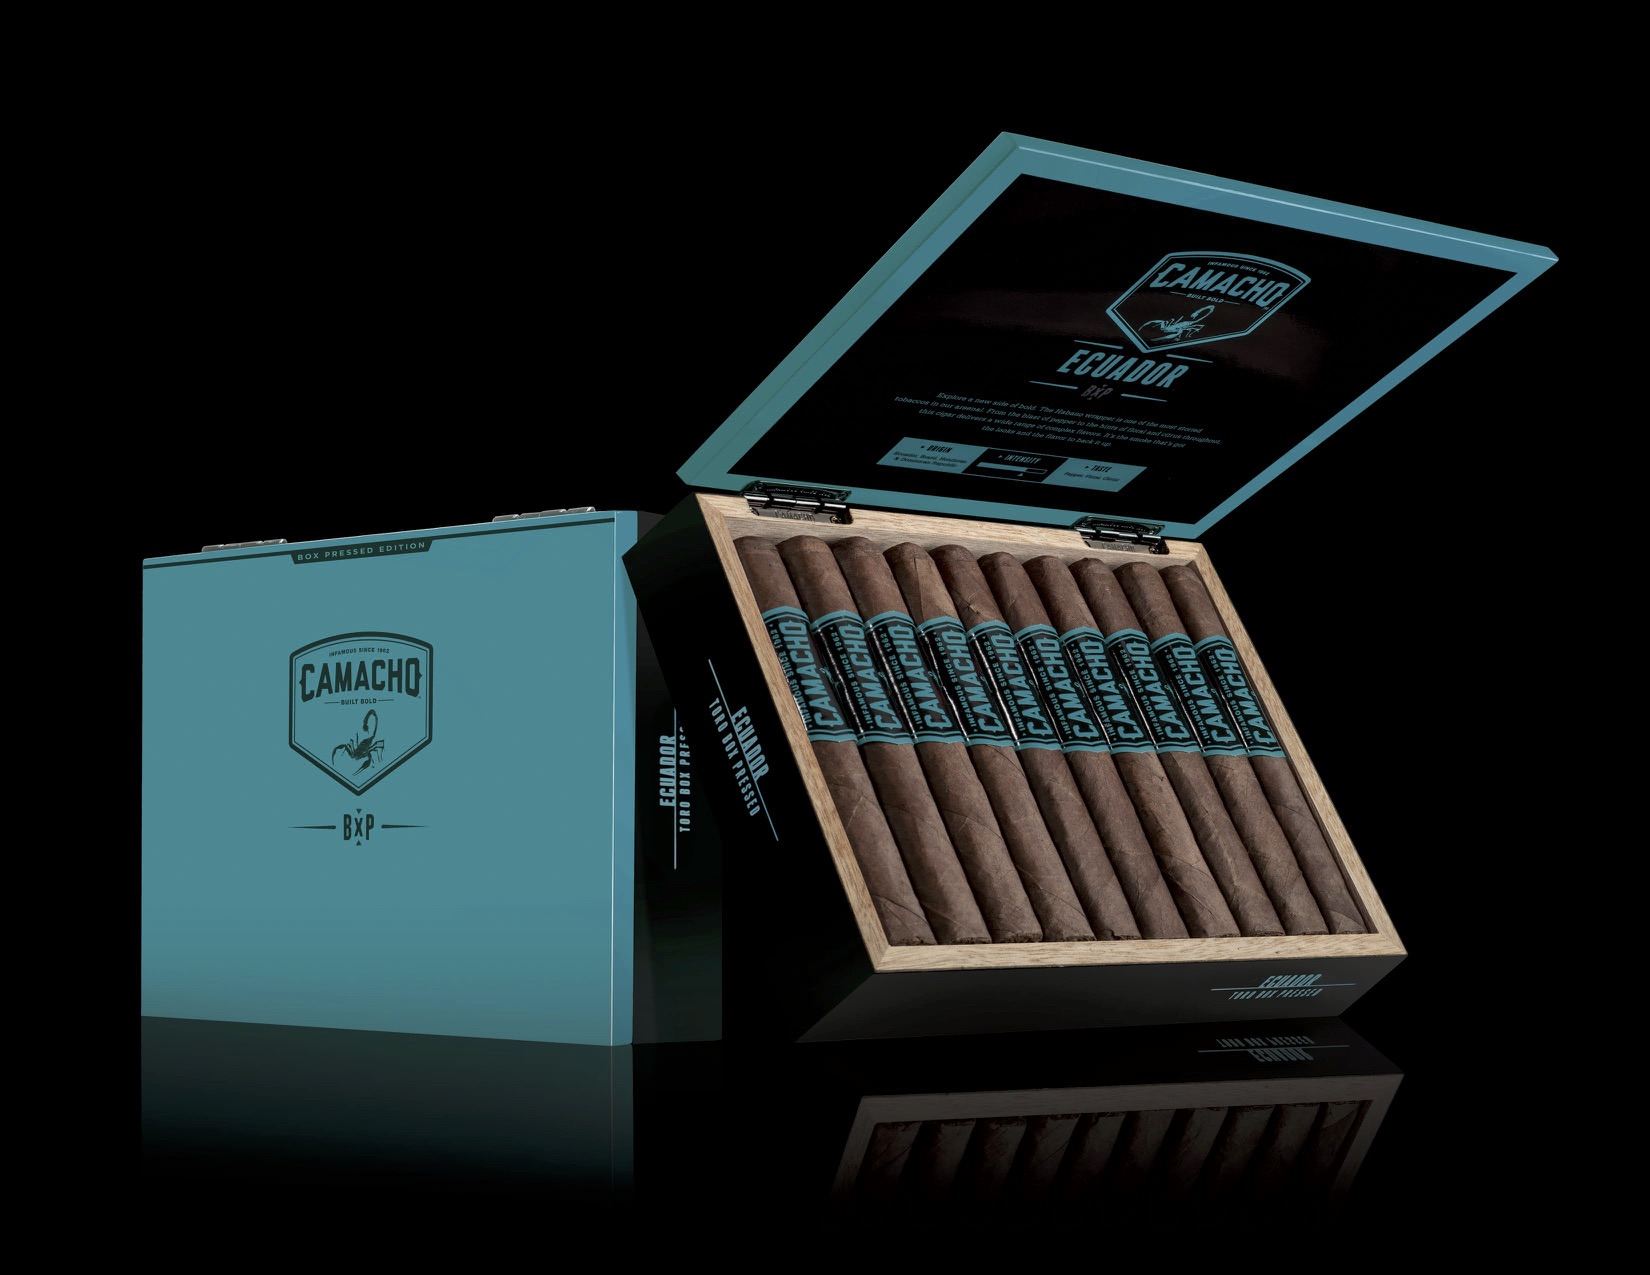 Cigar News: Camacho BXP Adds Box Pressed Offerings to Three Lines